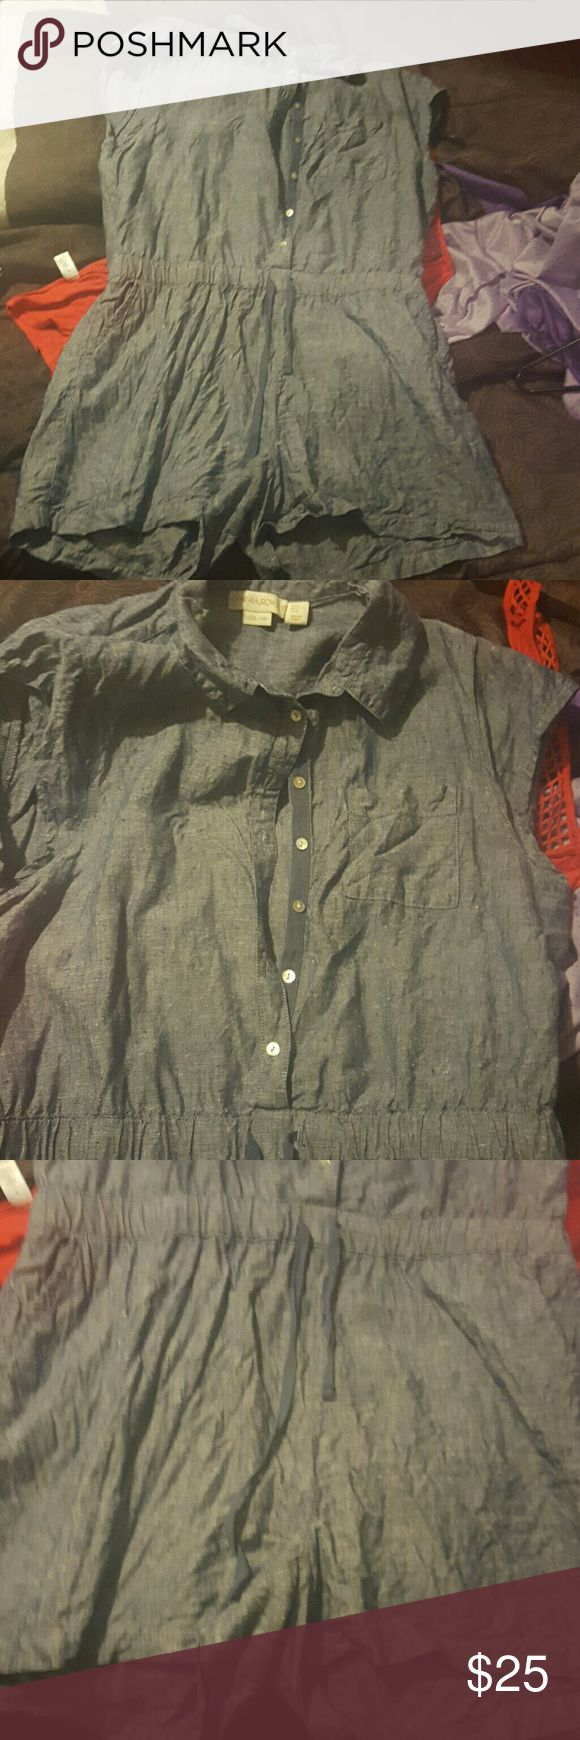 Jean romper Jean romper with pockets on the side and front button down little wrinkled but only worn once fits up to size 14 Cynthia Rowley Other